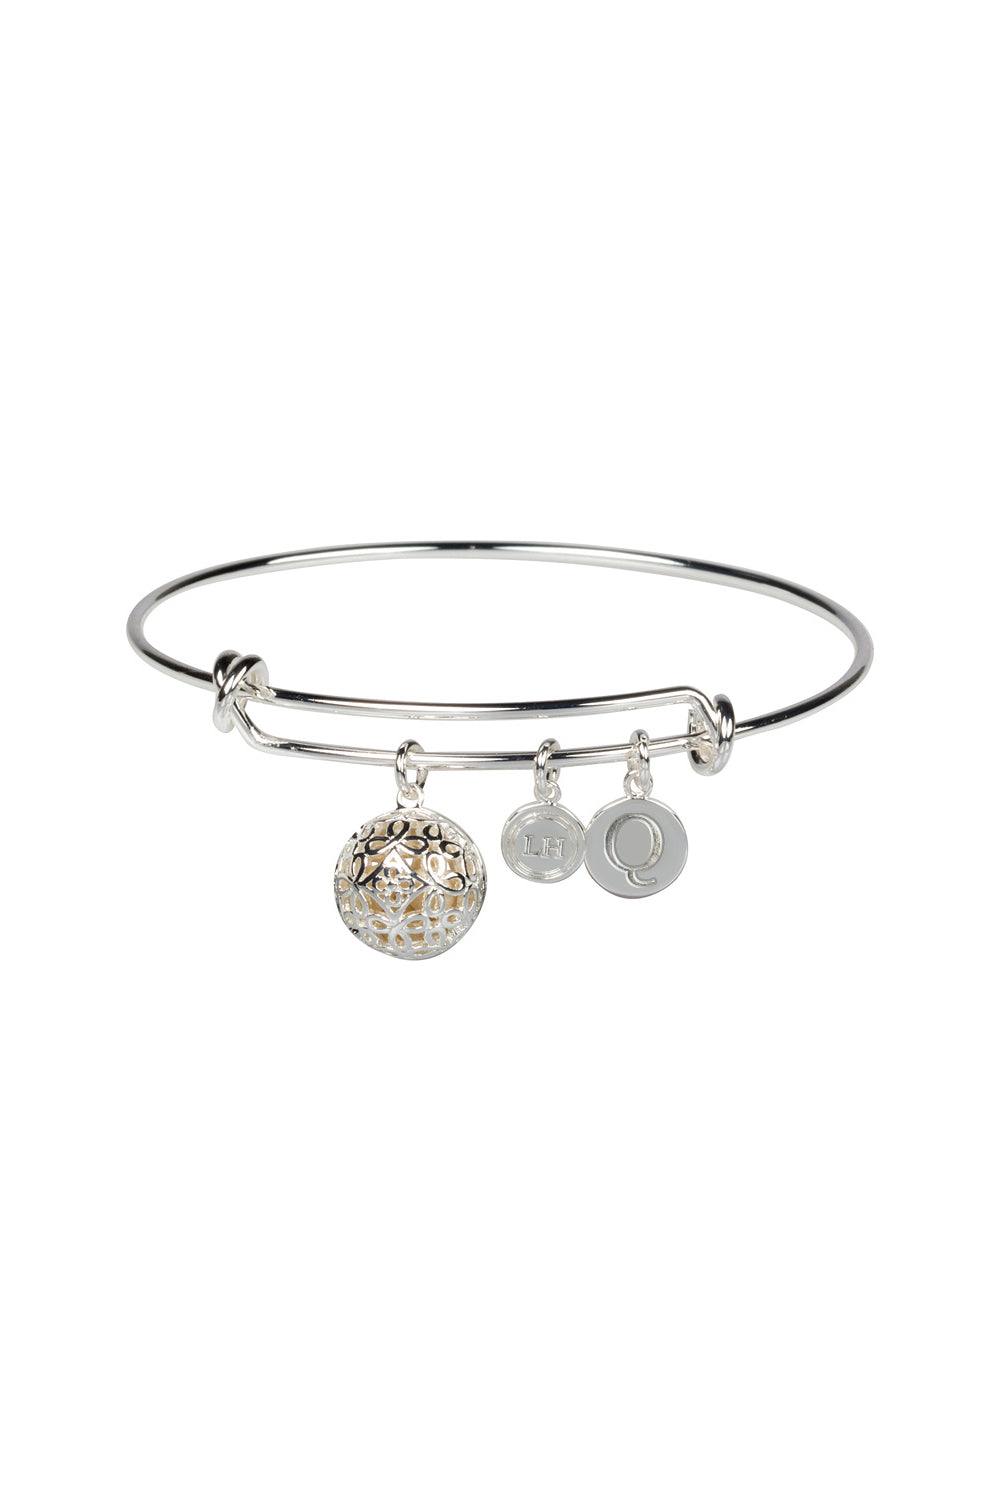 """Q"" Initial Fragrance Bangle with Silver Tone Charm"